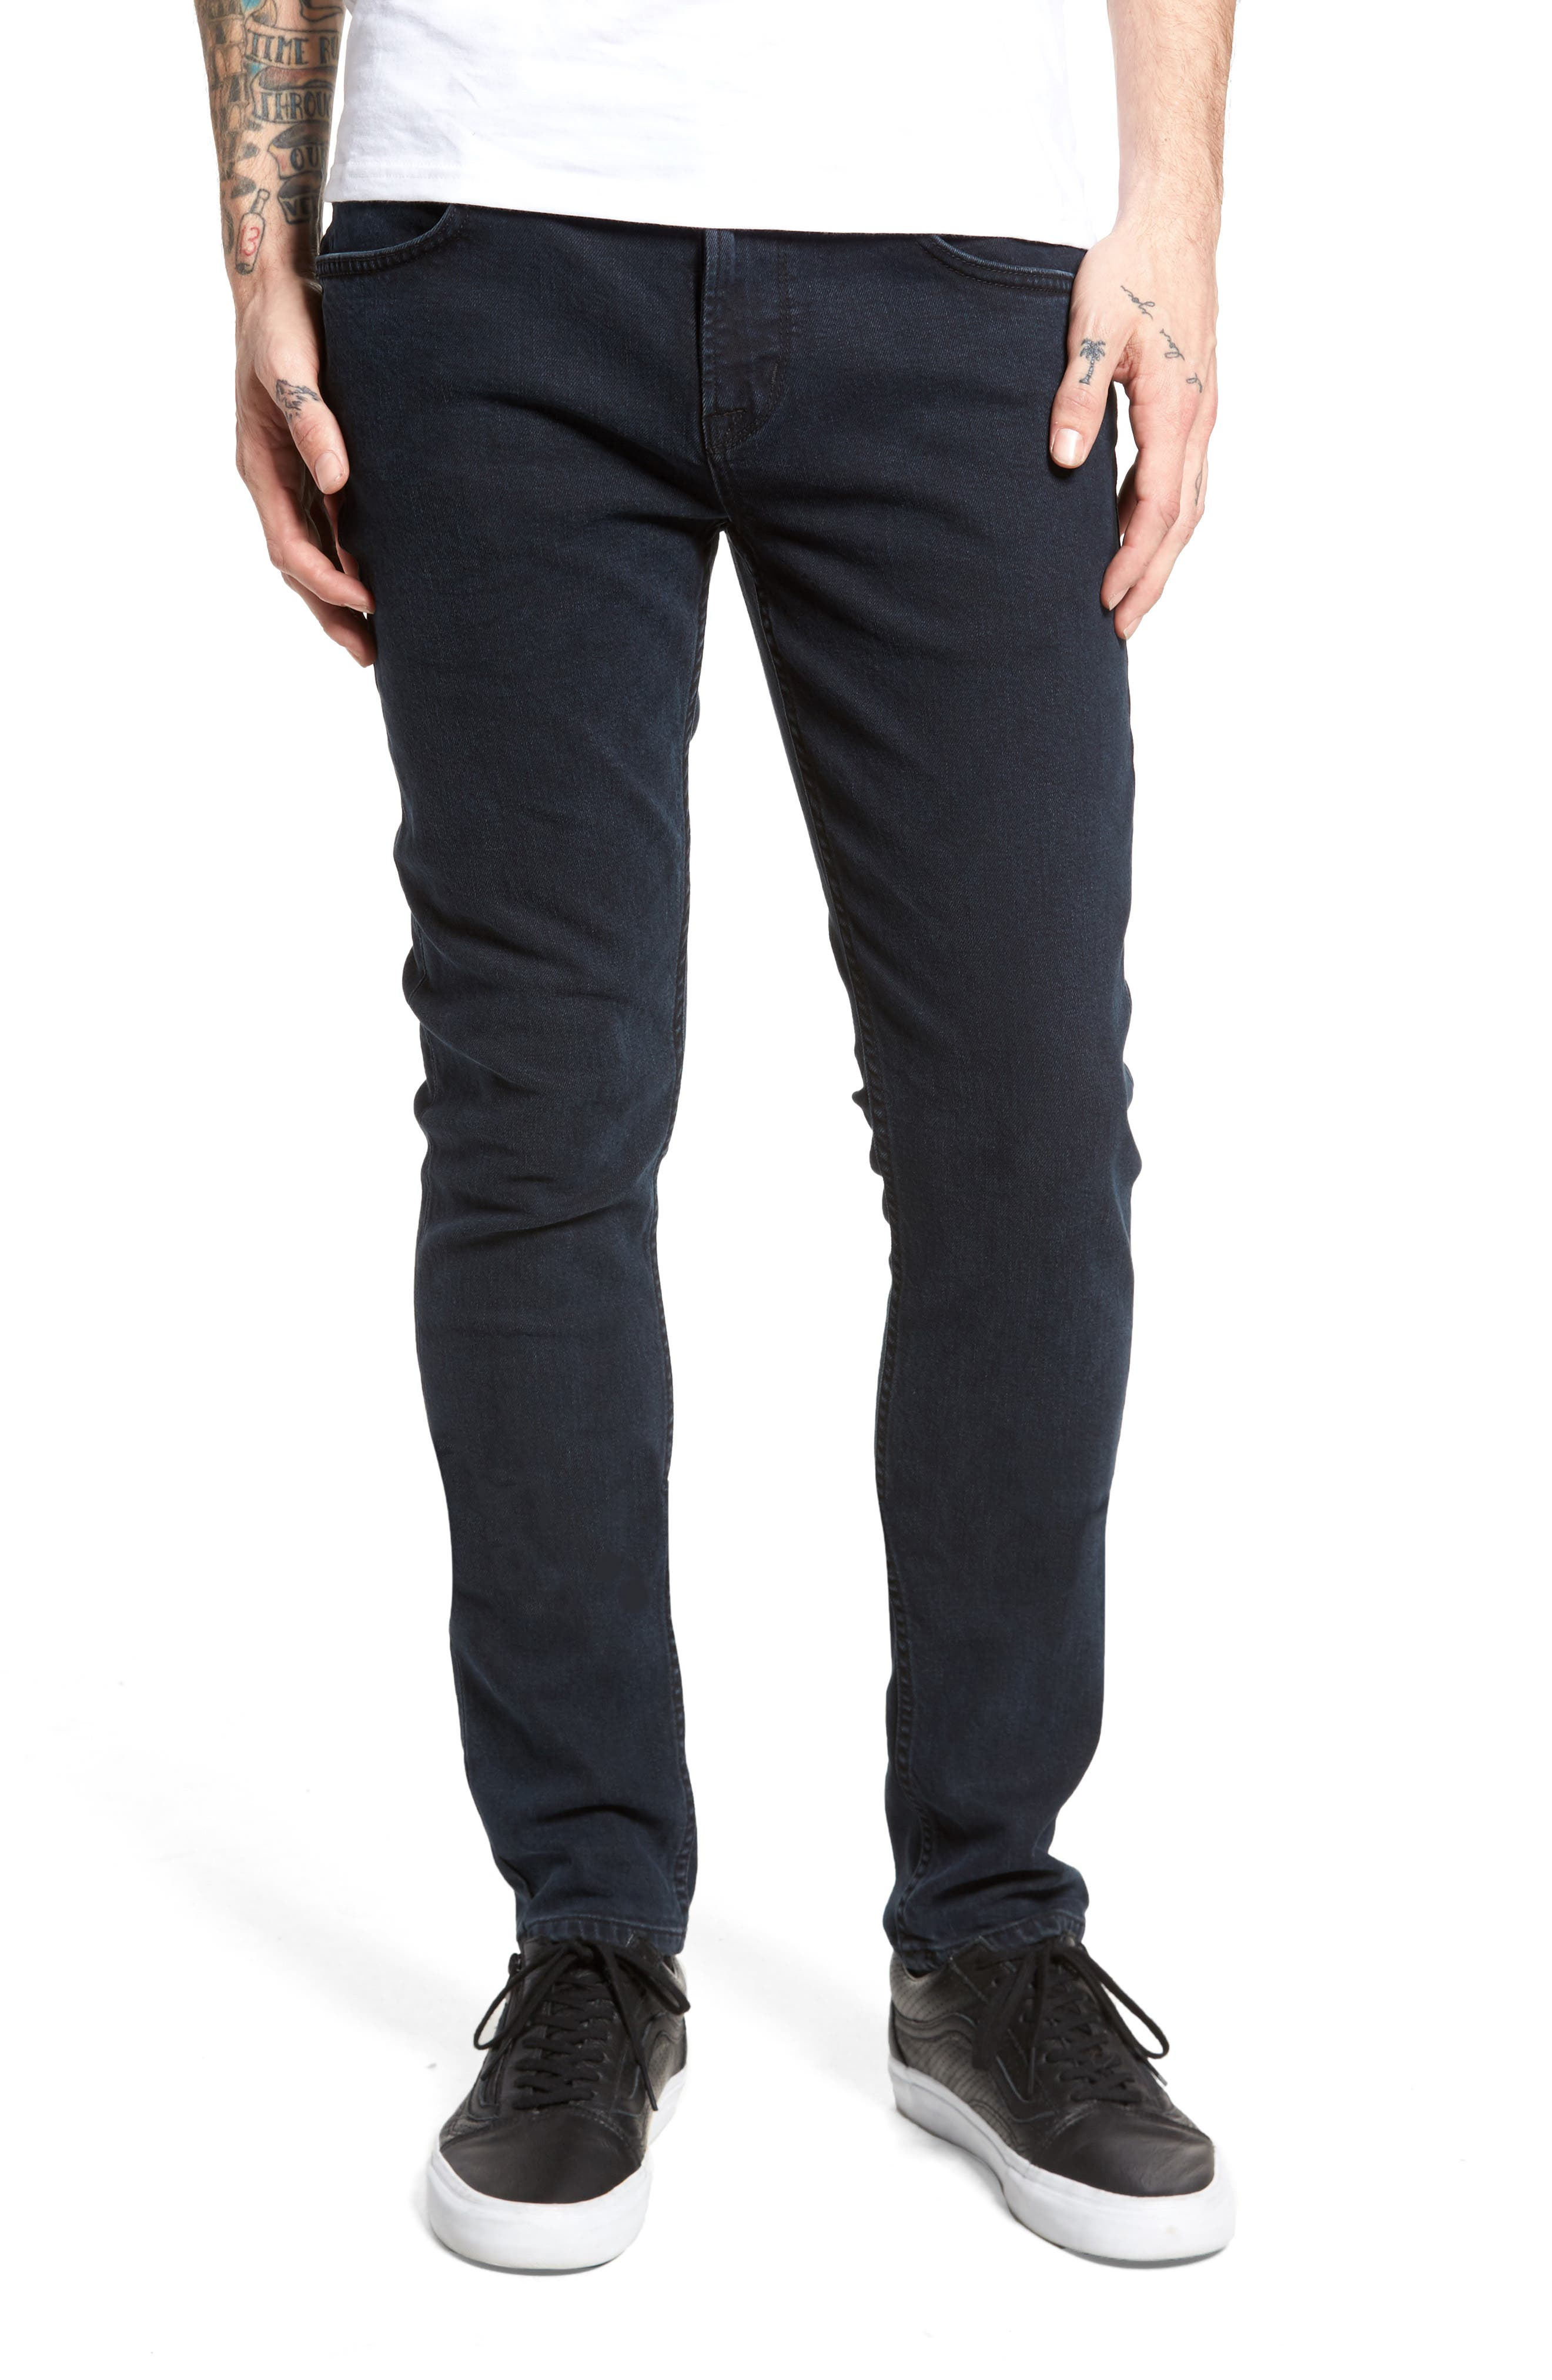 Axl Skinny Fit Jeans,                             Main thumbnail 1, color,